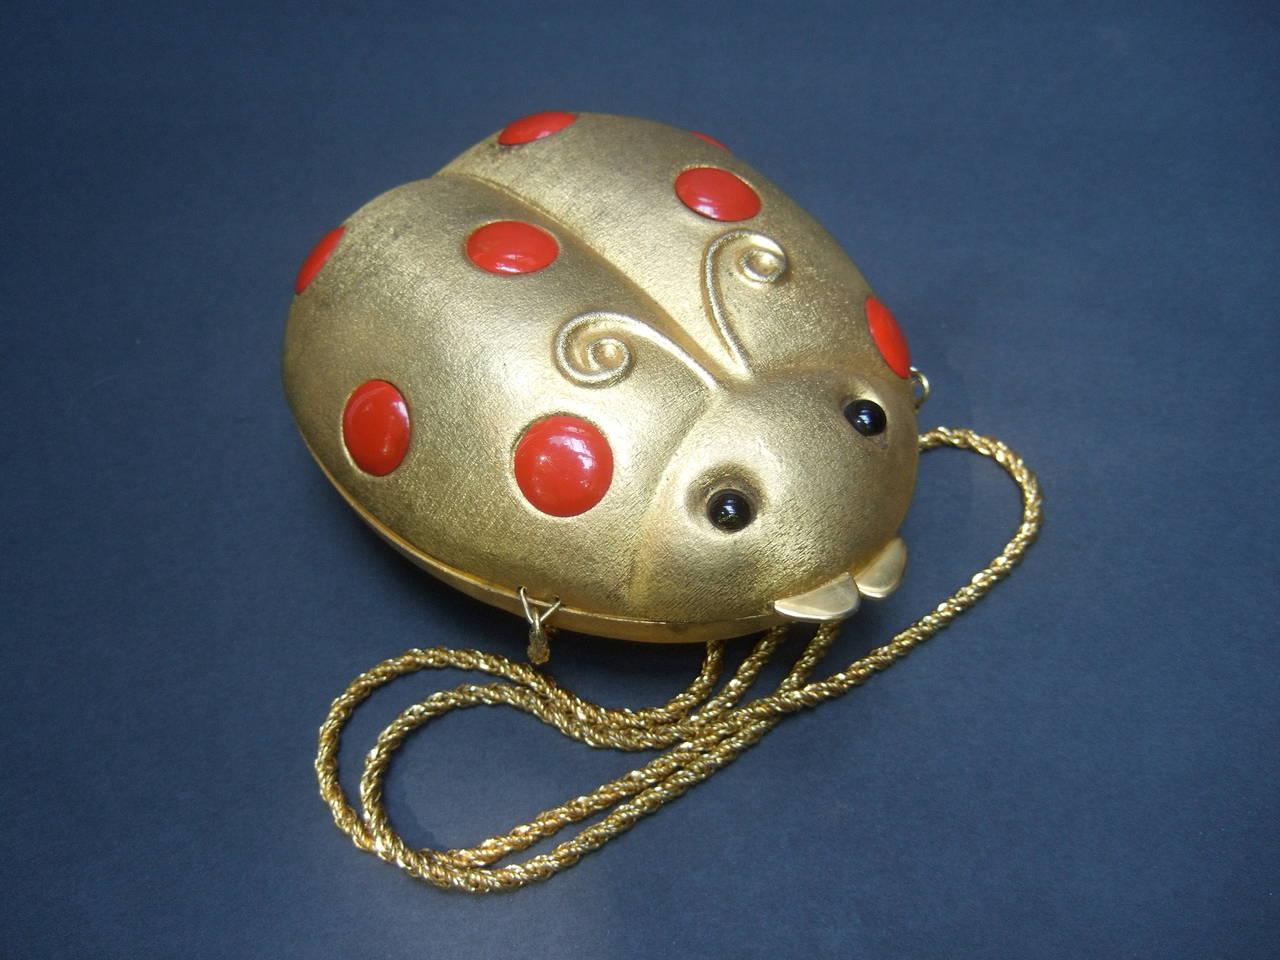 Saks Fifth Avenue Gilt metal lady bug evening bag Made in Italy c 1970 The charming gold metal minaudiare is embellished with  red enamel disc with black resin beaded eyes  The versatile design transitions from a chic clutch bag by placing the